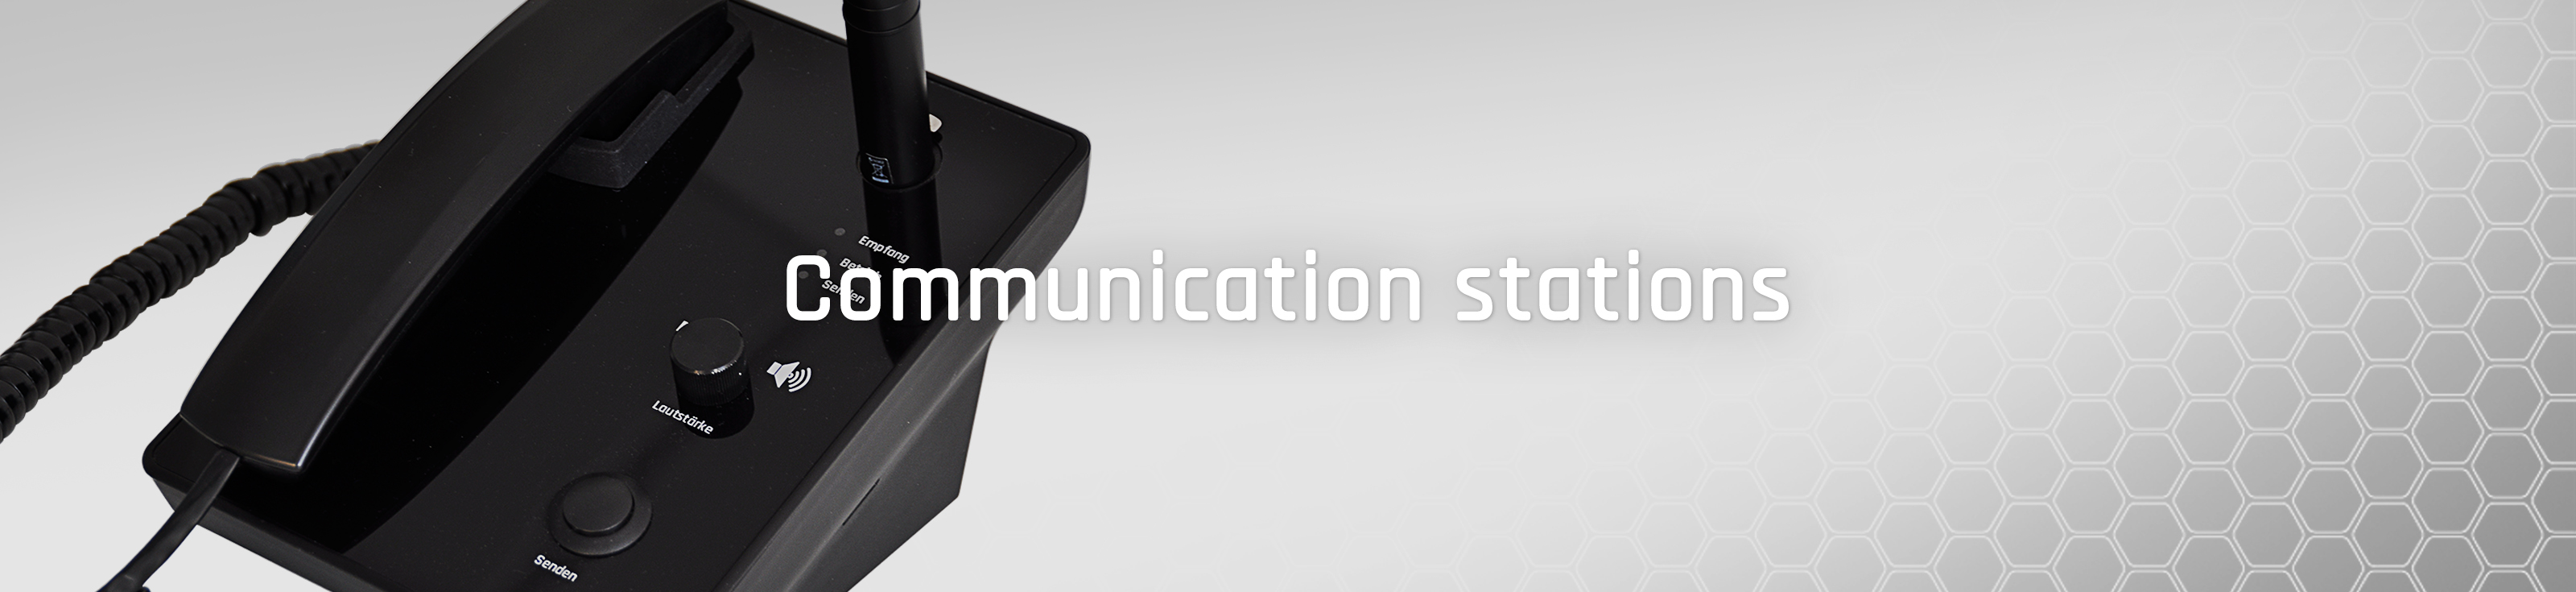 slider_communication_stations_en